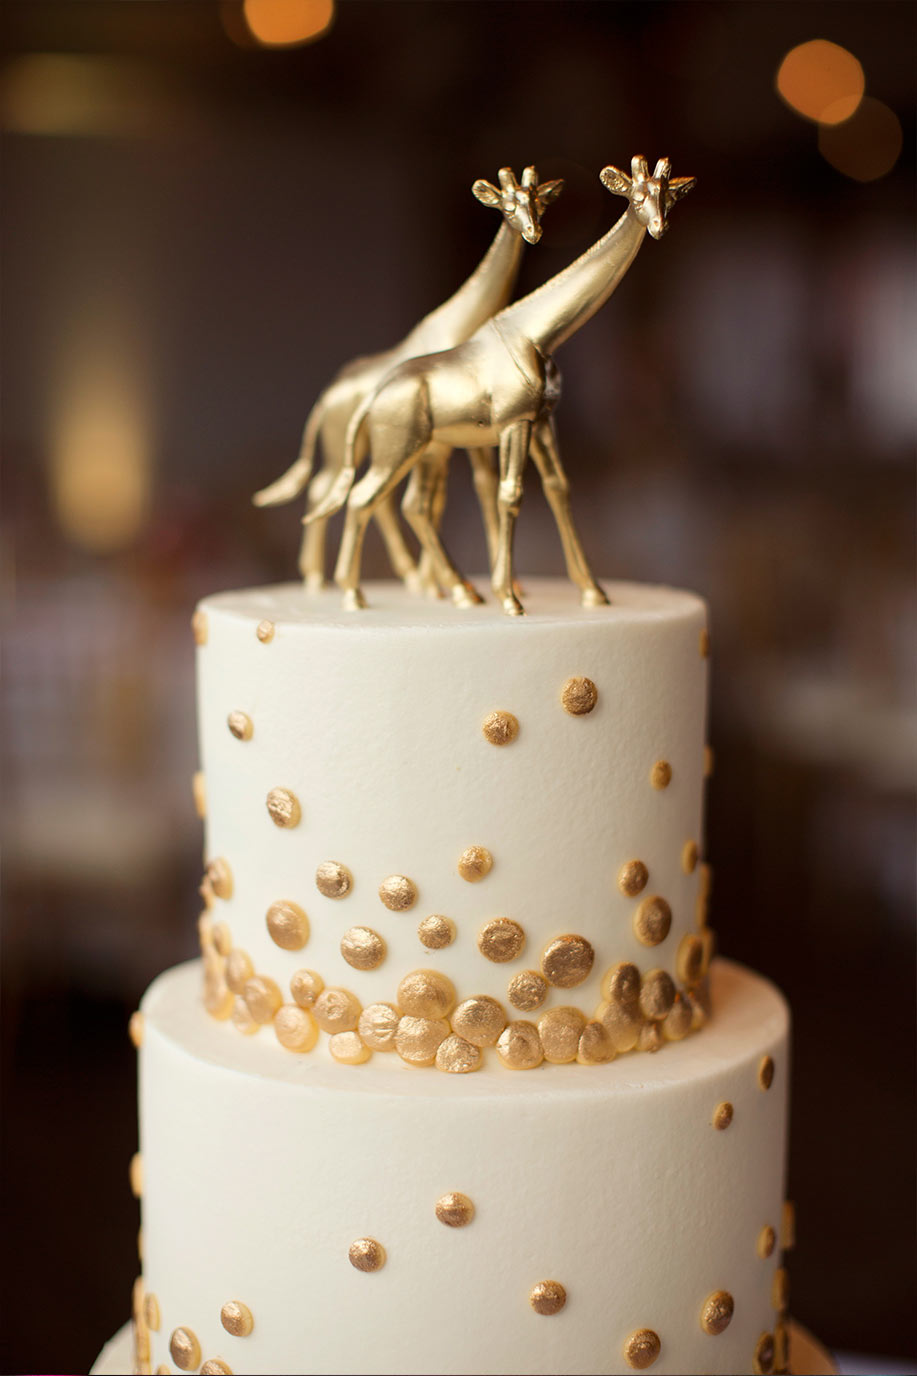 Brides wedding cake with gold polka dots and giraffe topper